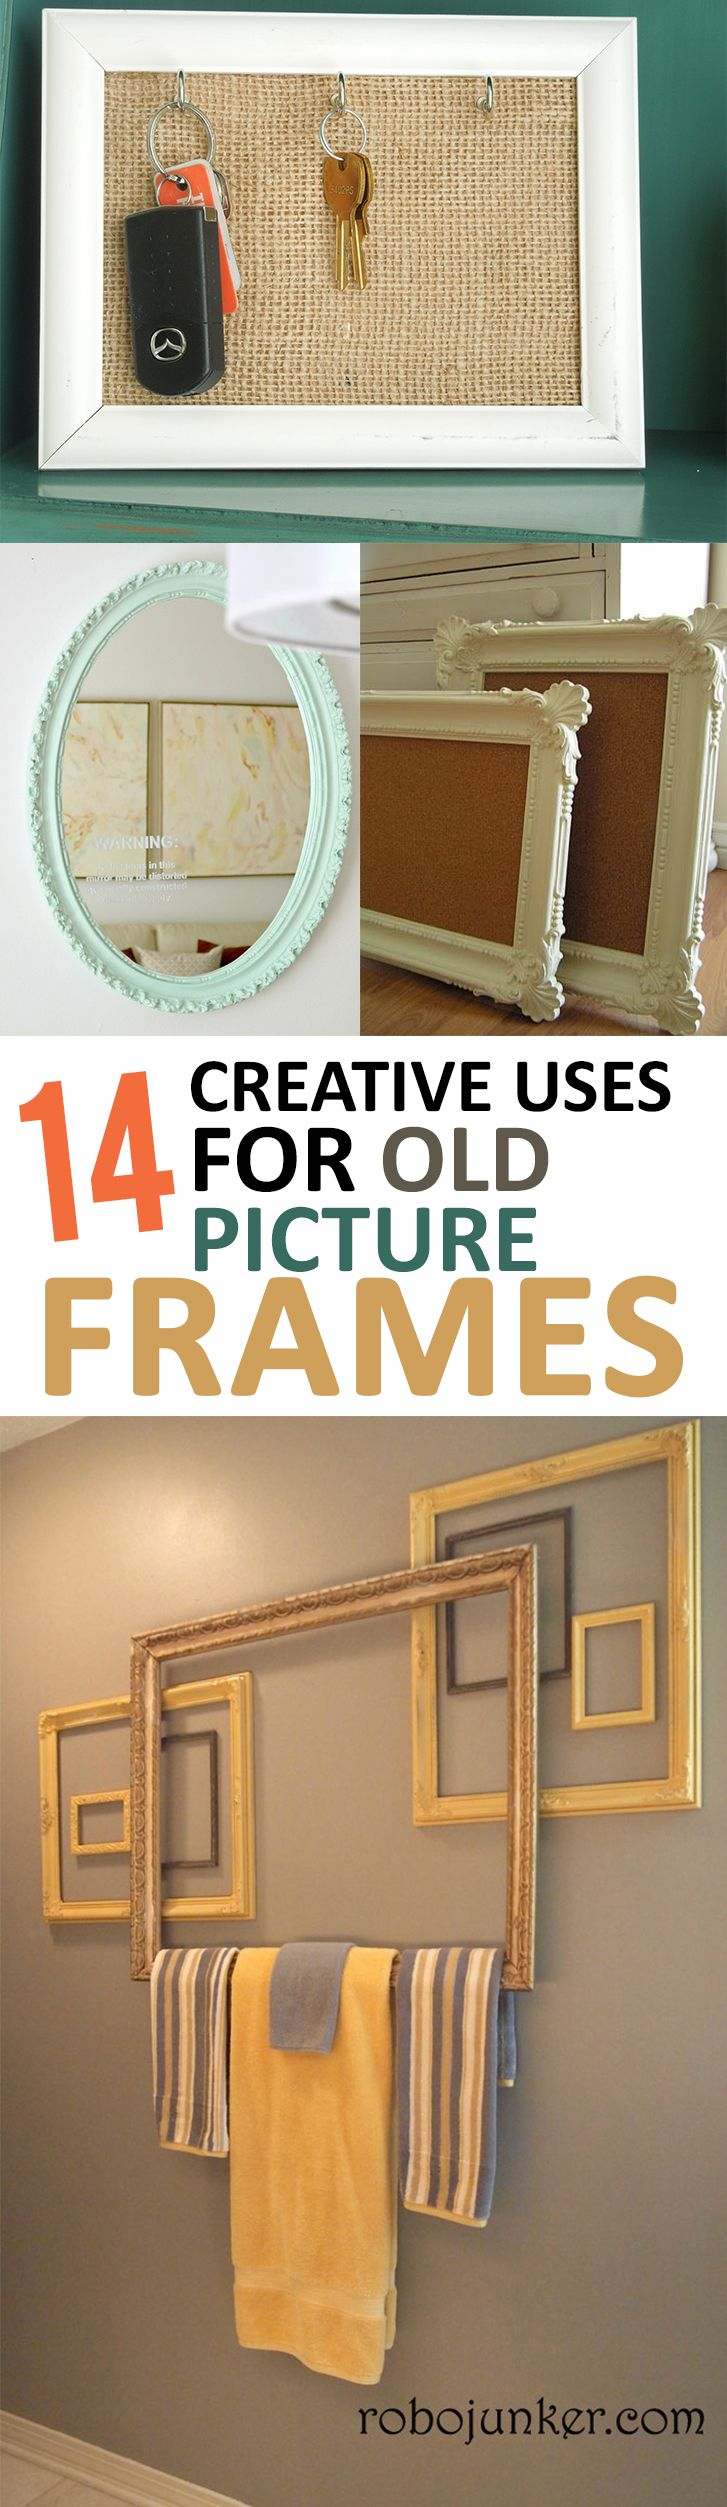 14 Creative Uses For Old Picture Frames Old Picture Frames Home Diy Cheap Home Decor